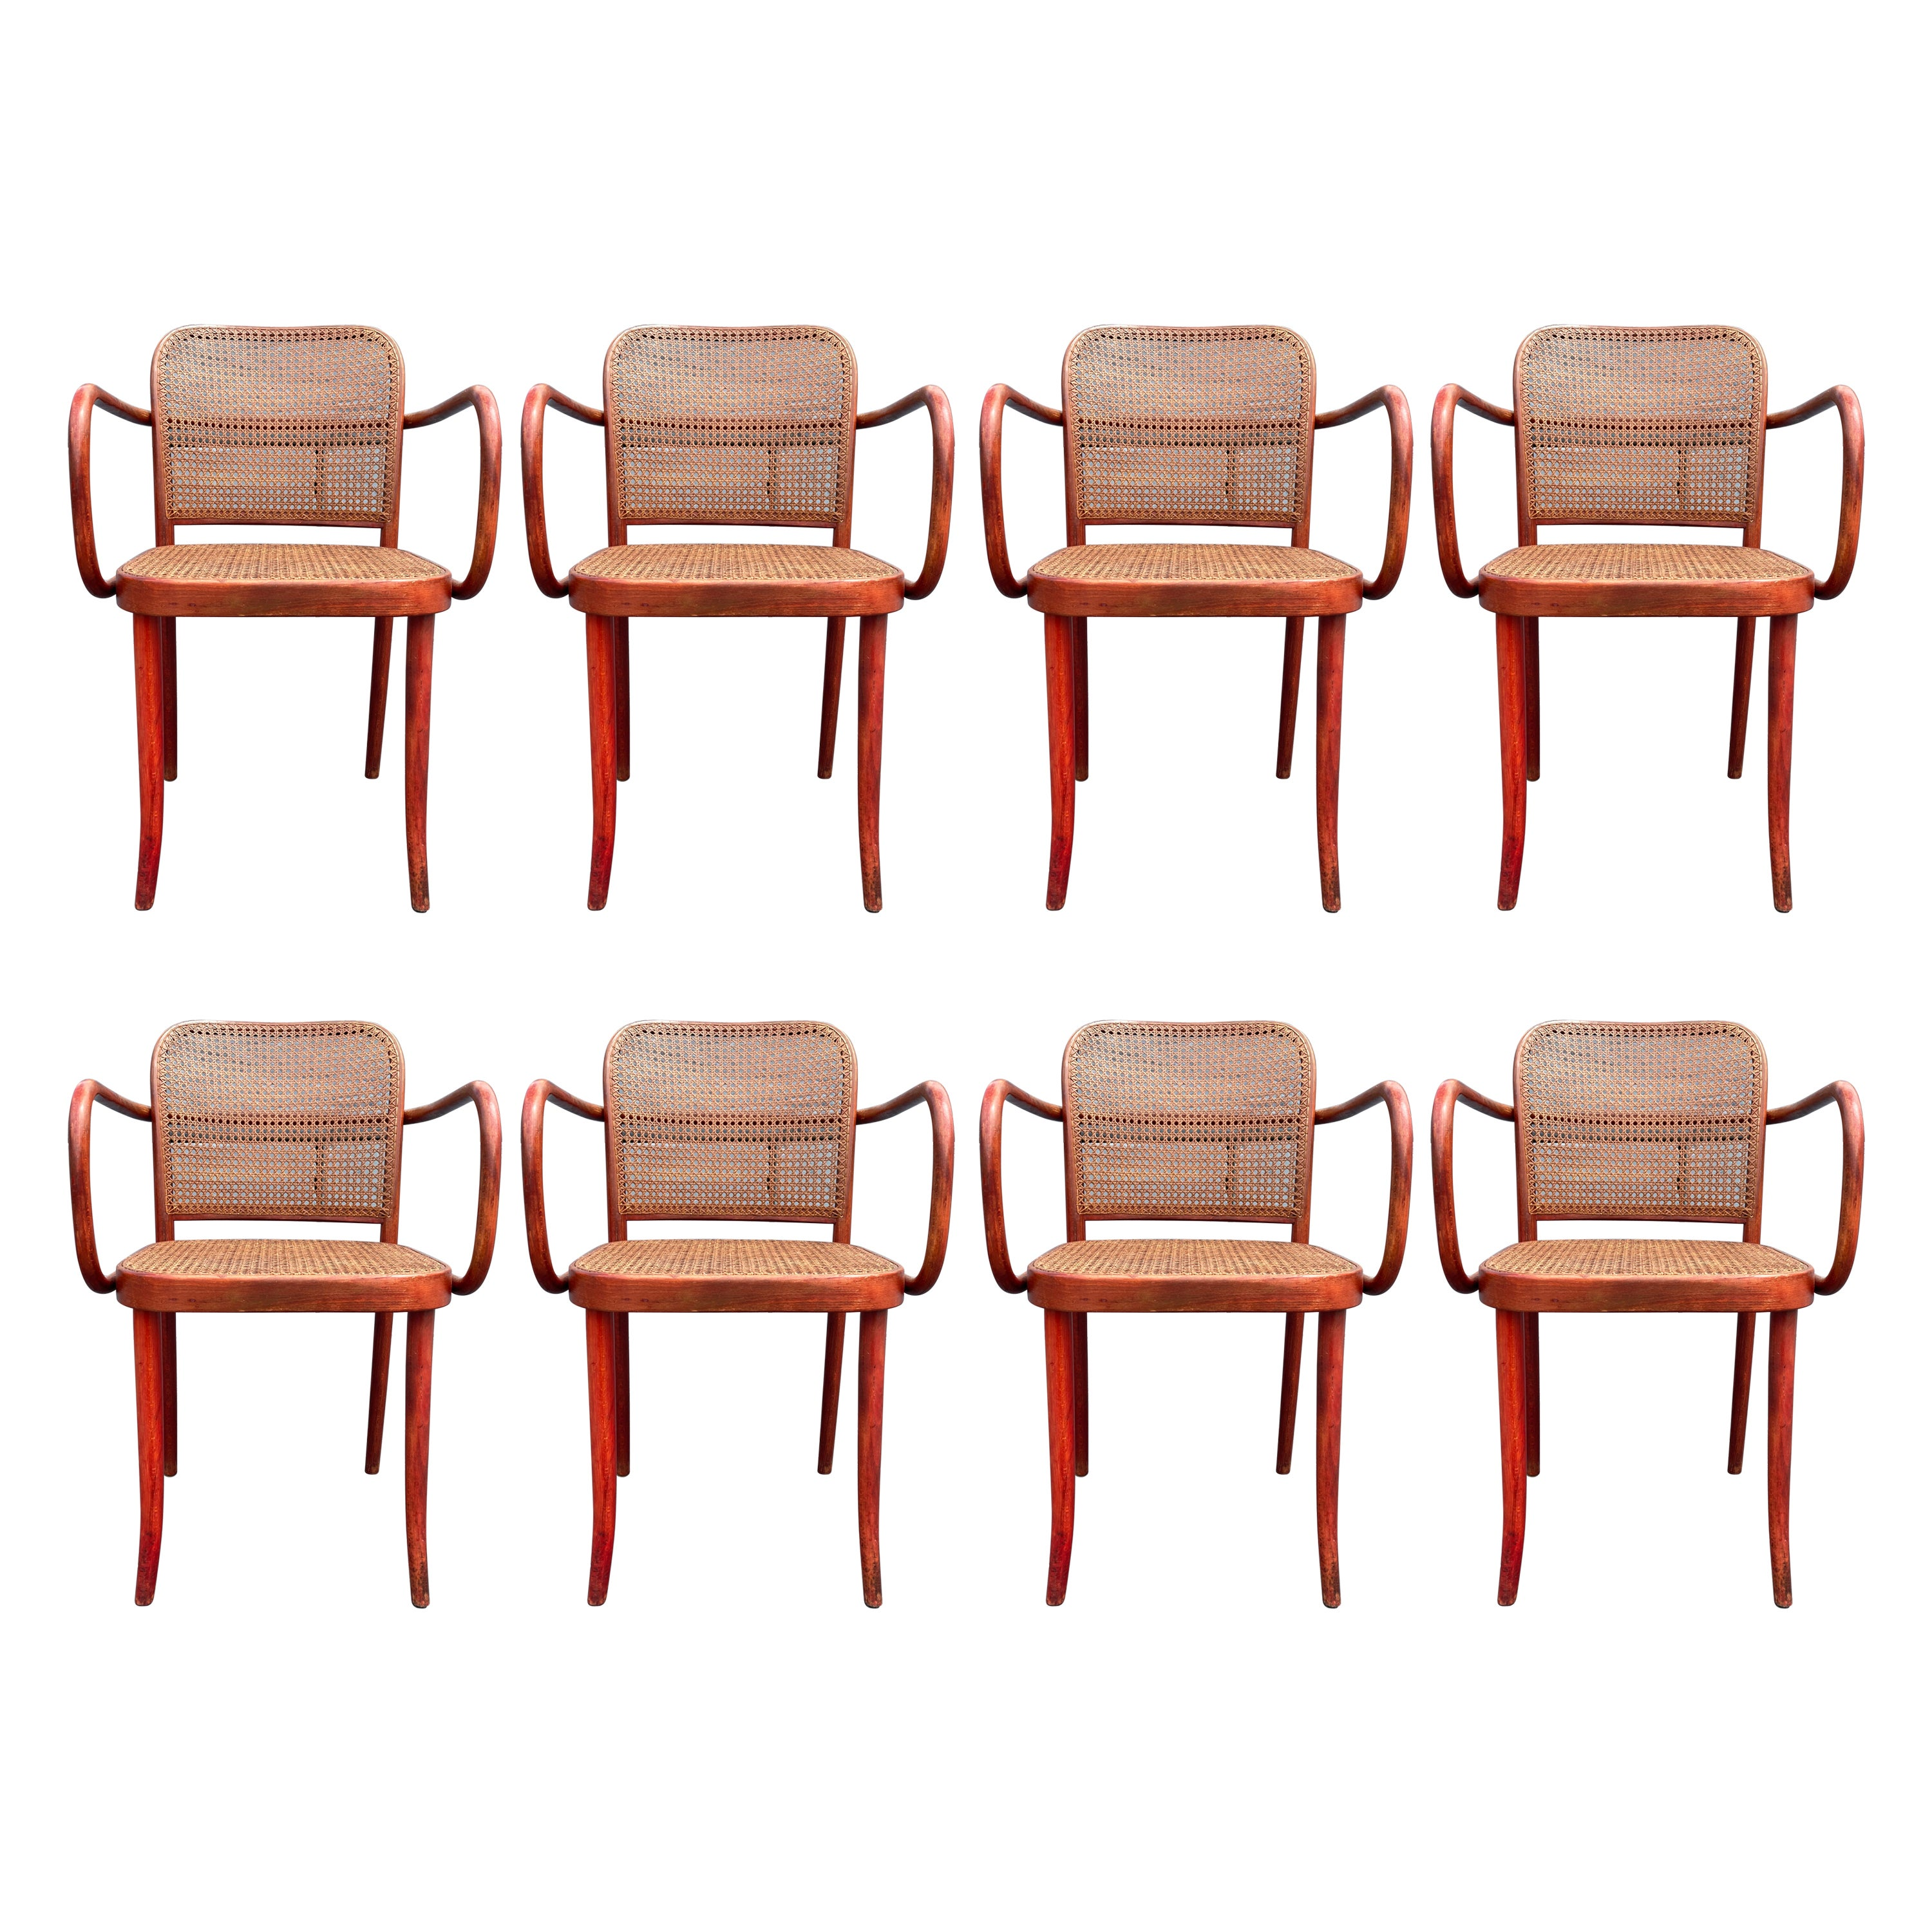 Set of Eight Dining Chairs by Josef Hoffmann, Bentwood, Red Stain, Thonet, Cane